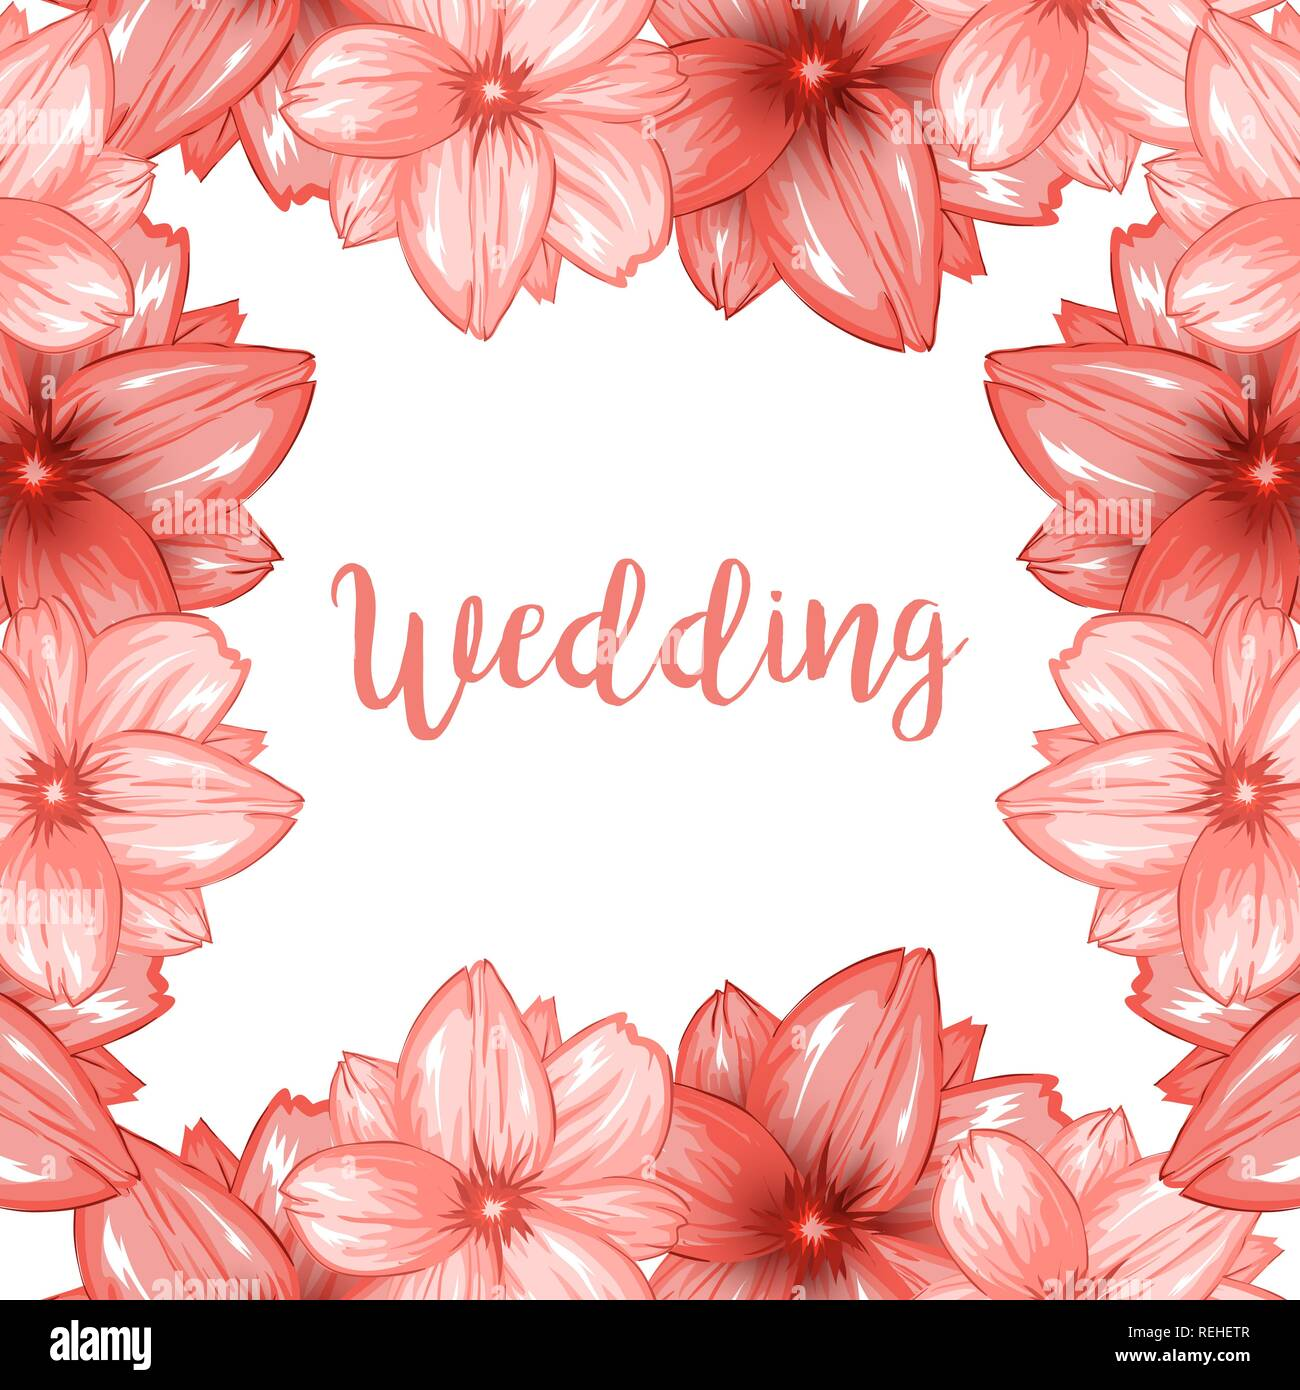 Pink cherry blossom or sakura flowers frame for wedding design with white space for wishes - Stock Image